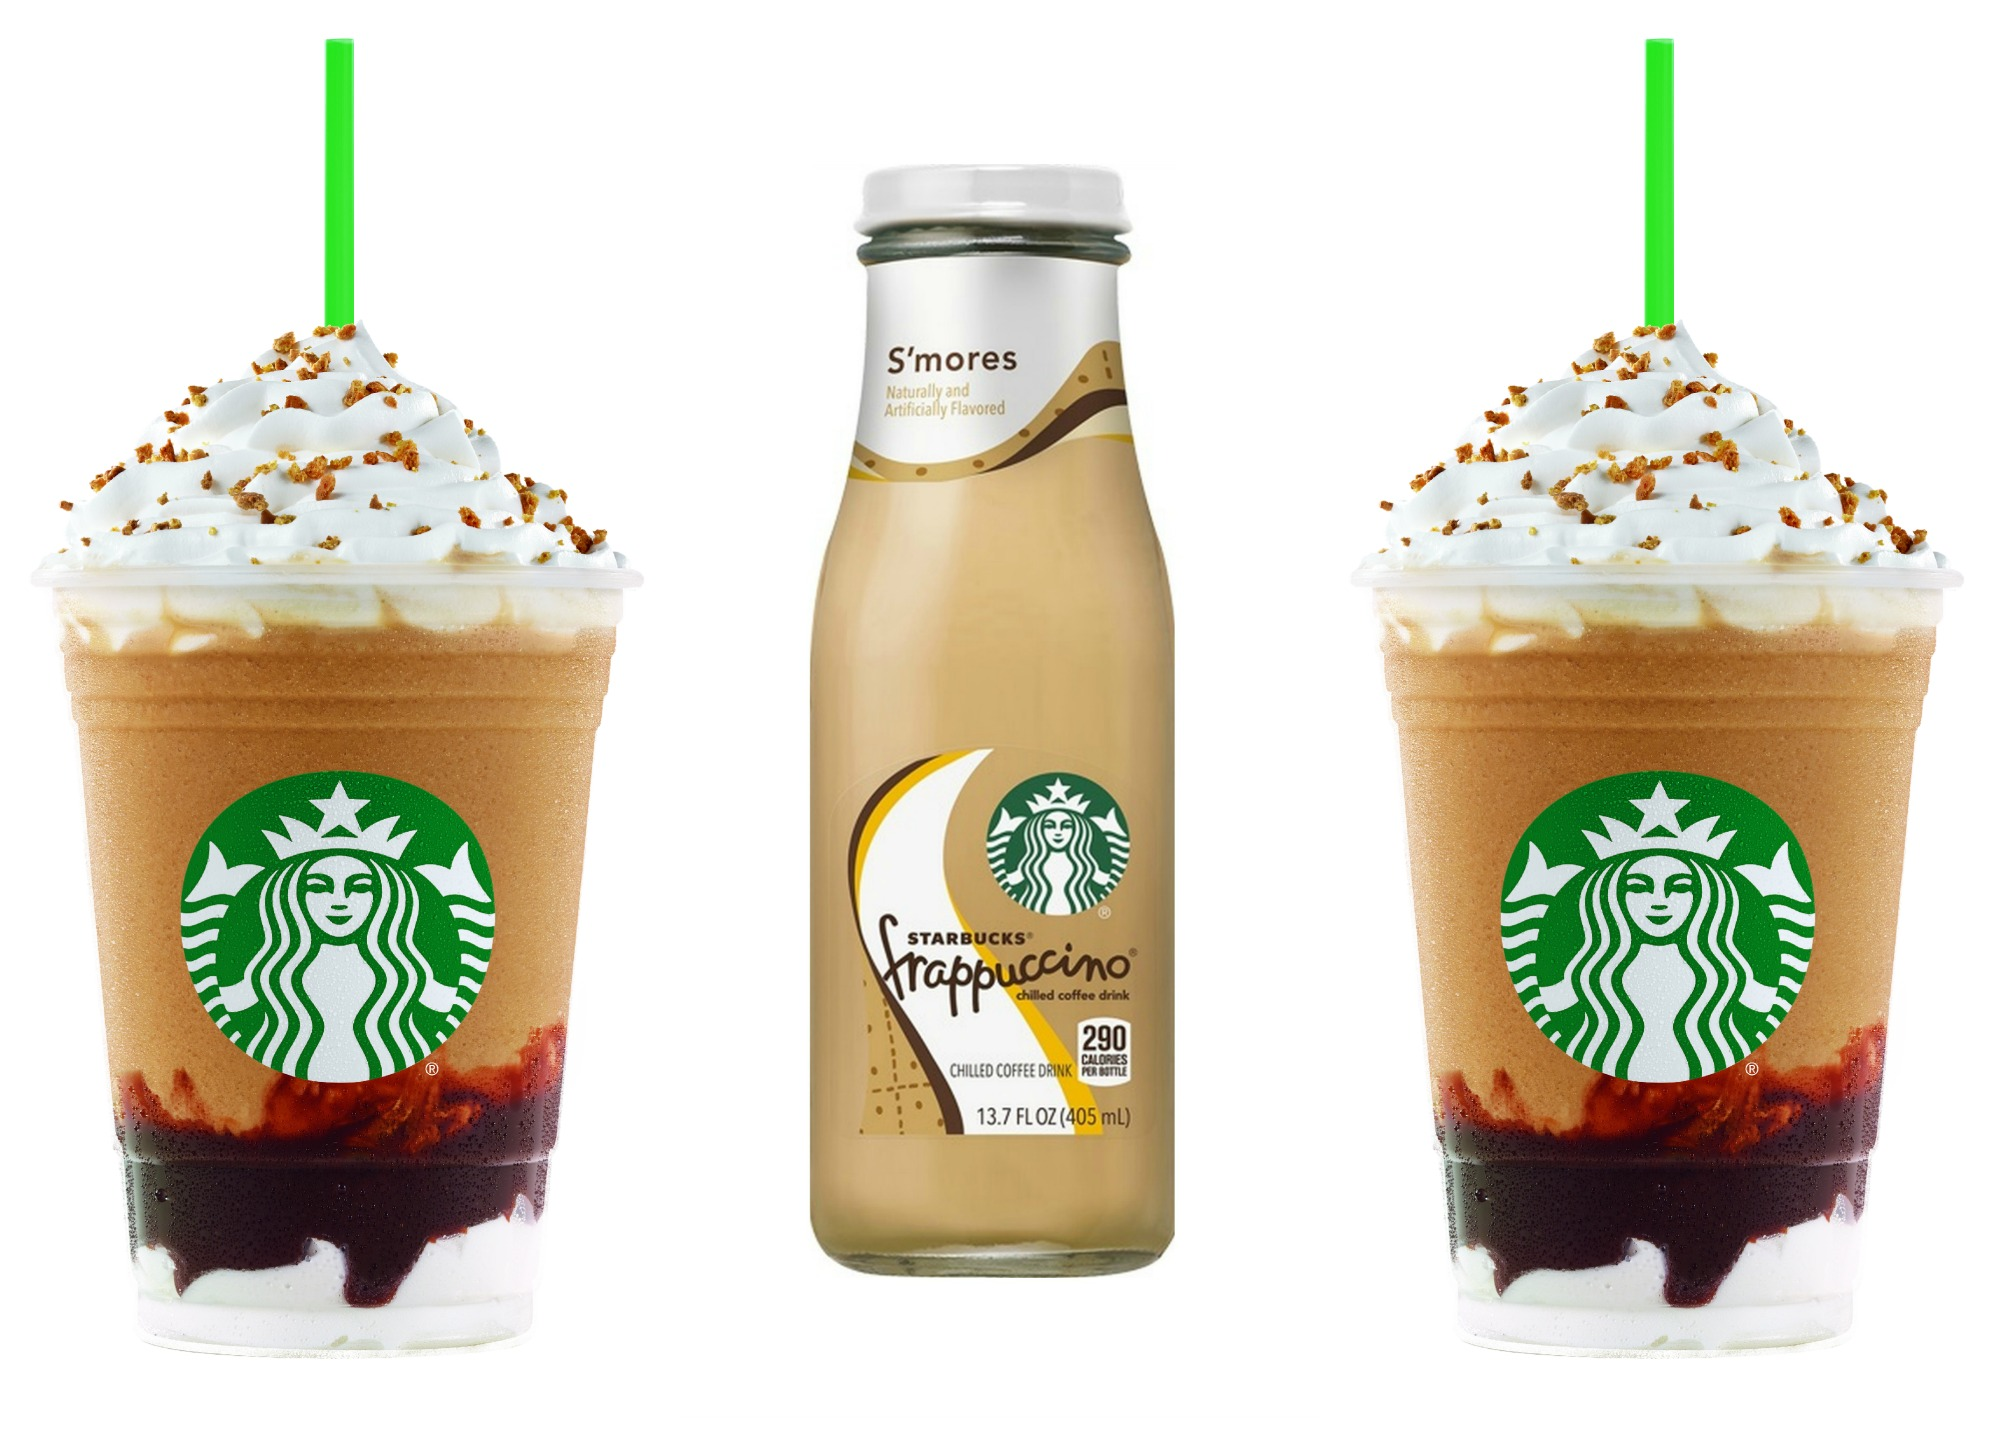 2000x1437 Is The Starbucks S'Mores Frappuccino Caffeinated Here's What You